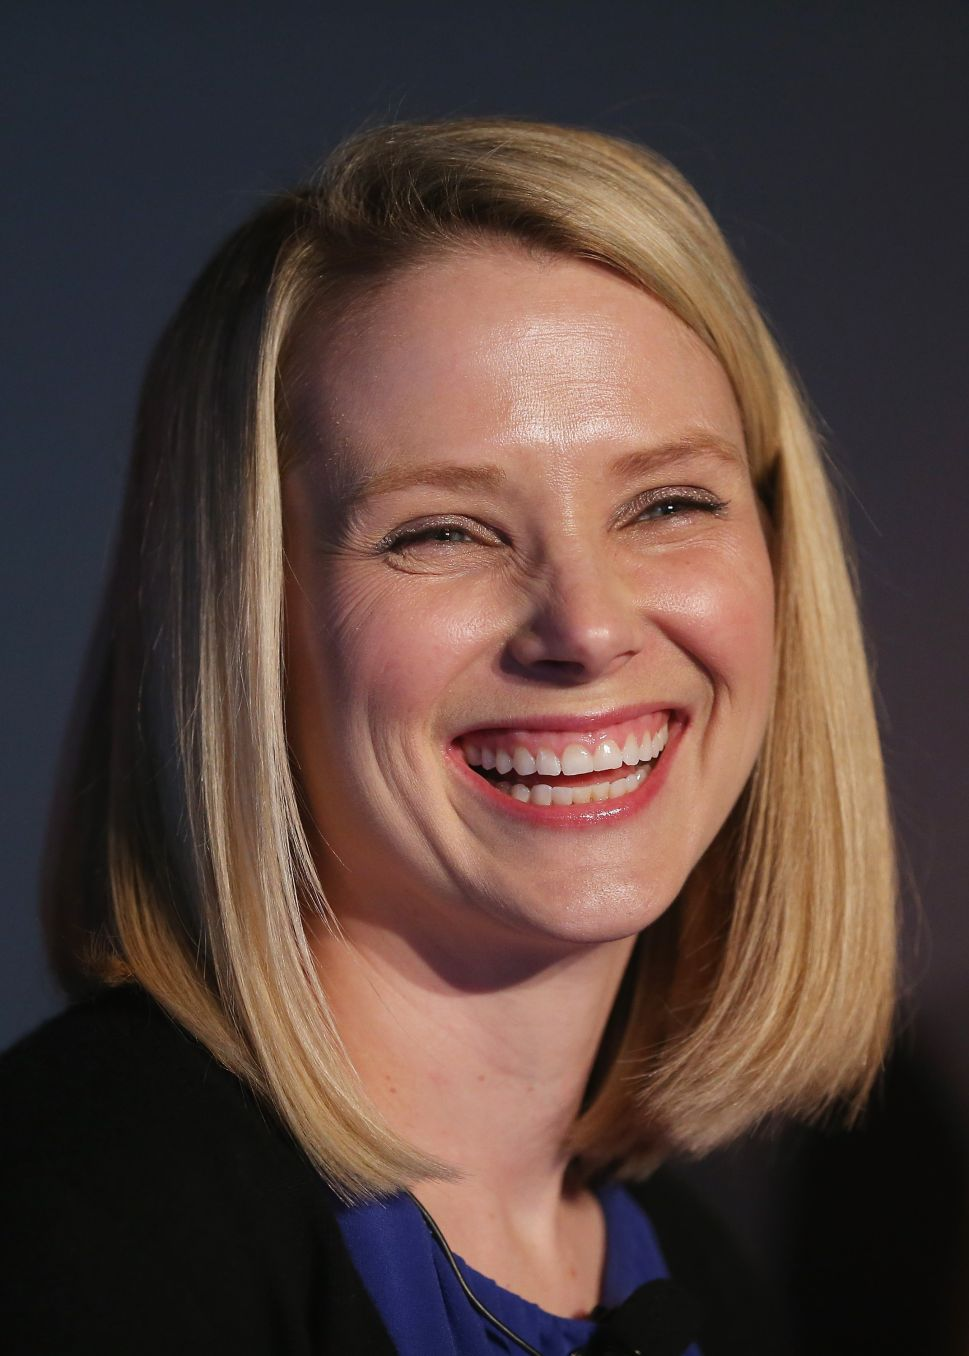 Booting Up: Marissa Mayer's First Year at Yahoo!, Gowalla Cofounder Exits Facebook